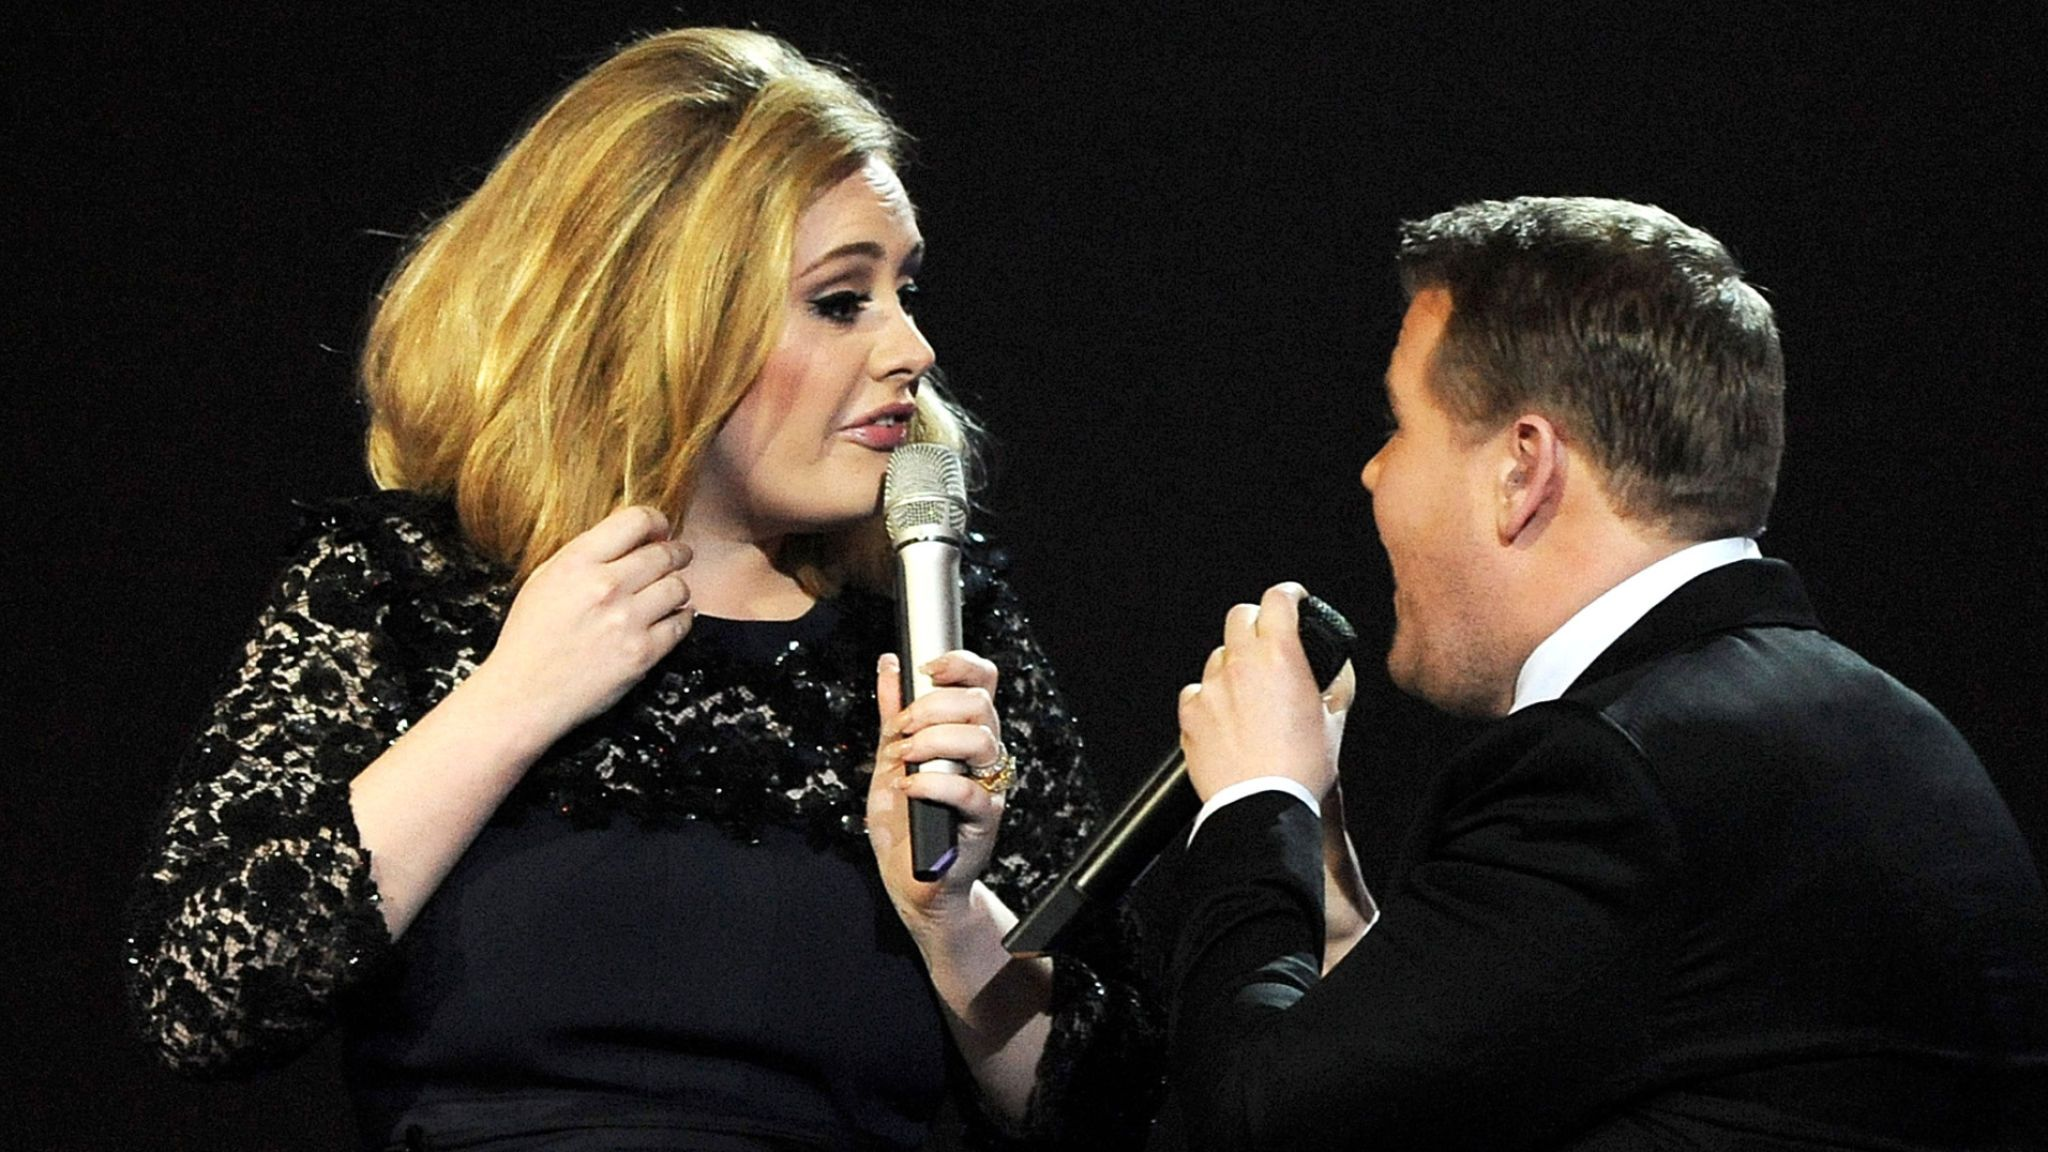 Adele is interrupted by James Corden while accepting her award in 2012. Pic: Dave M. Benett/Getty Images